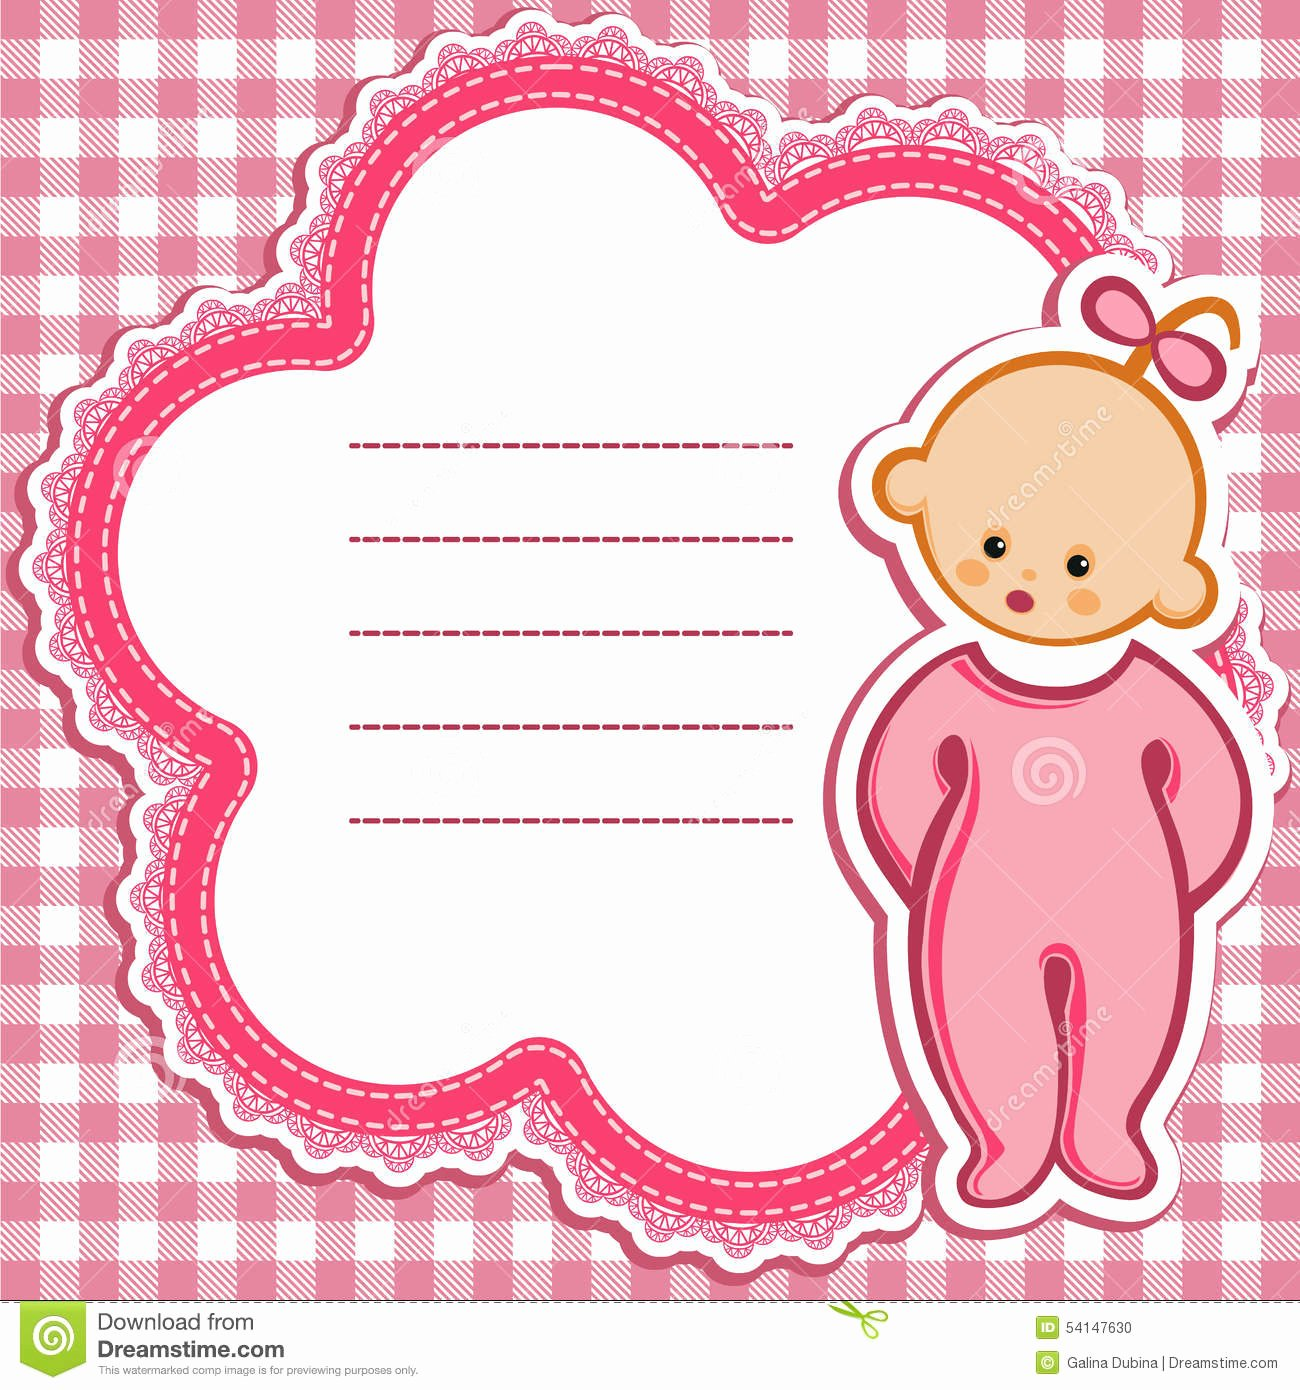 stock illustration card baby girl birthday nice greeting template cute simple artistic hand drawn illustration doodle shower greetings invitation image